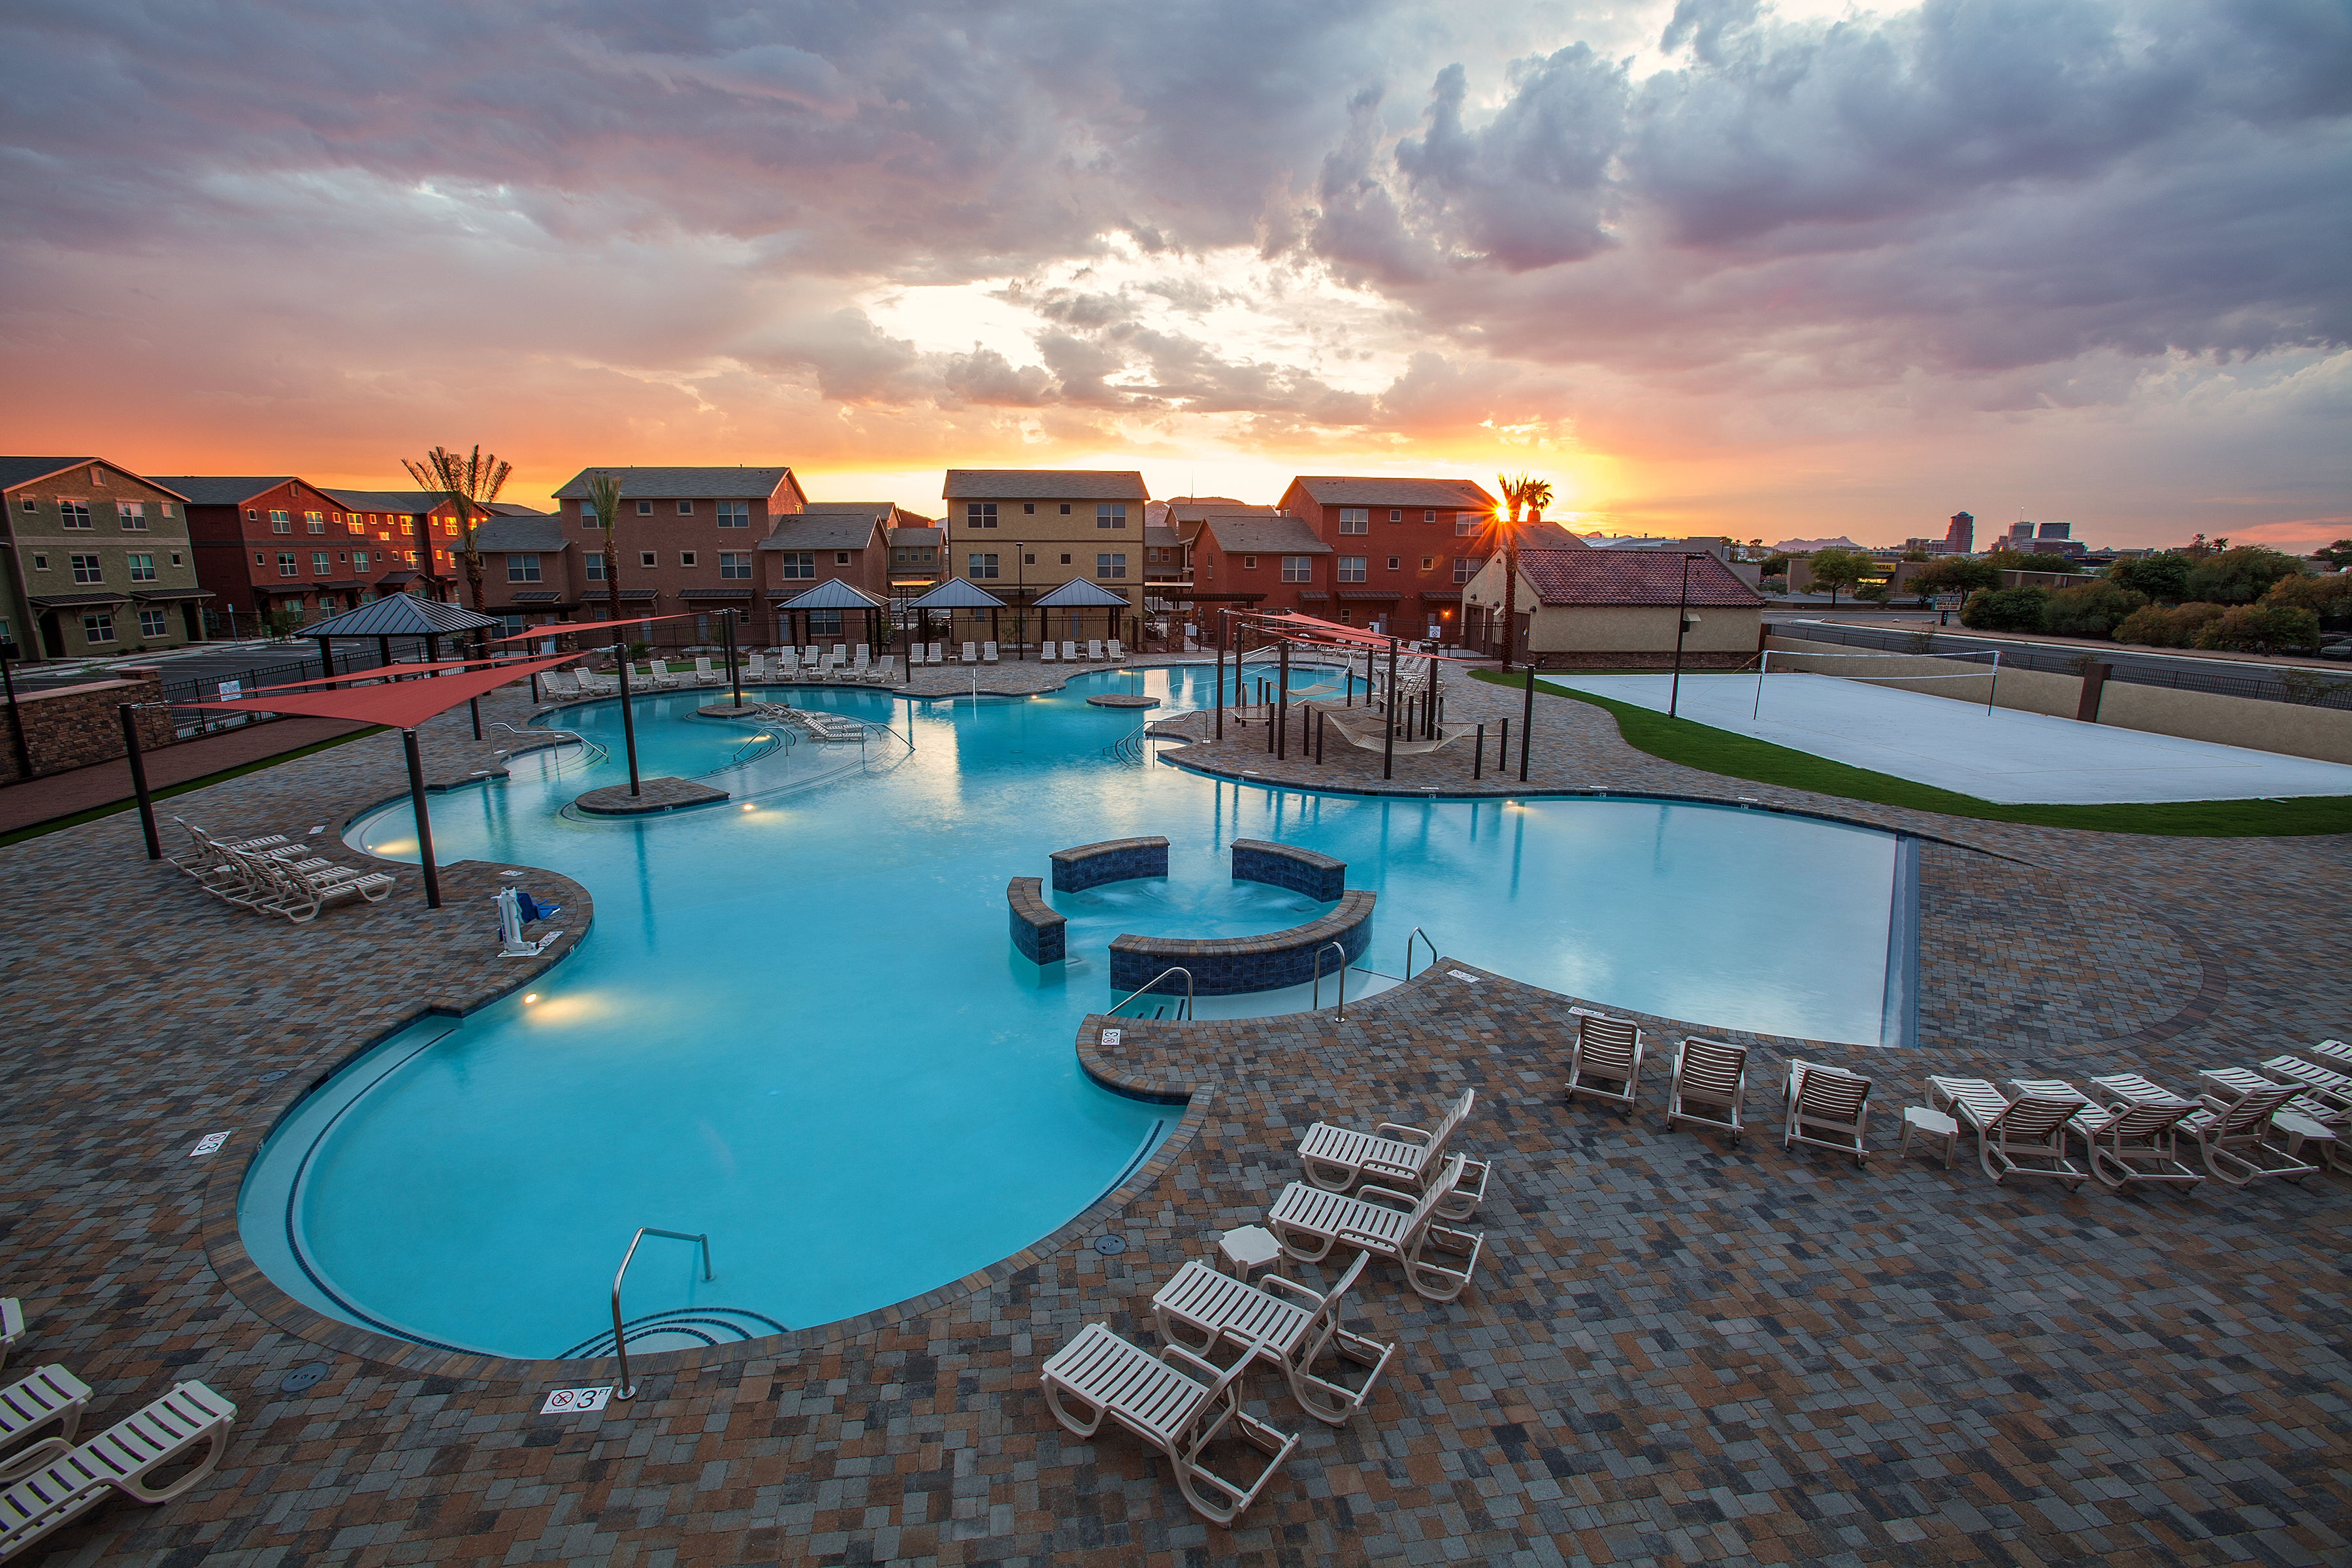 Patio Pools Built The Largest Pebble Tec Surface In Southern AZ At 11,327  Square Foot Of Internal Area And Is The Largest Body..Read More